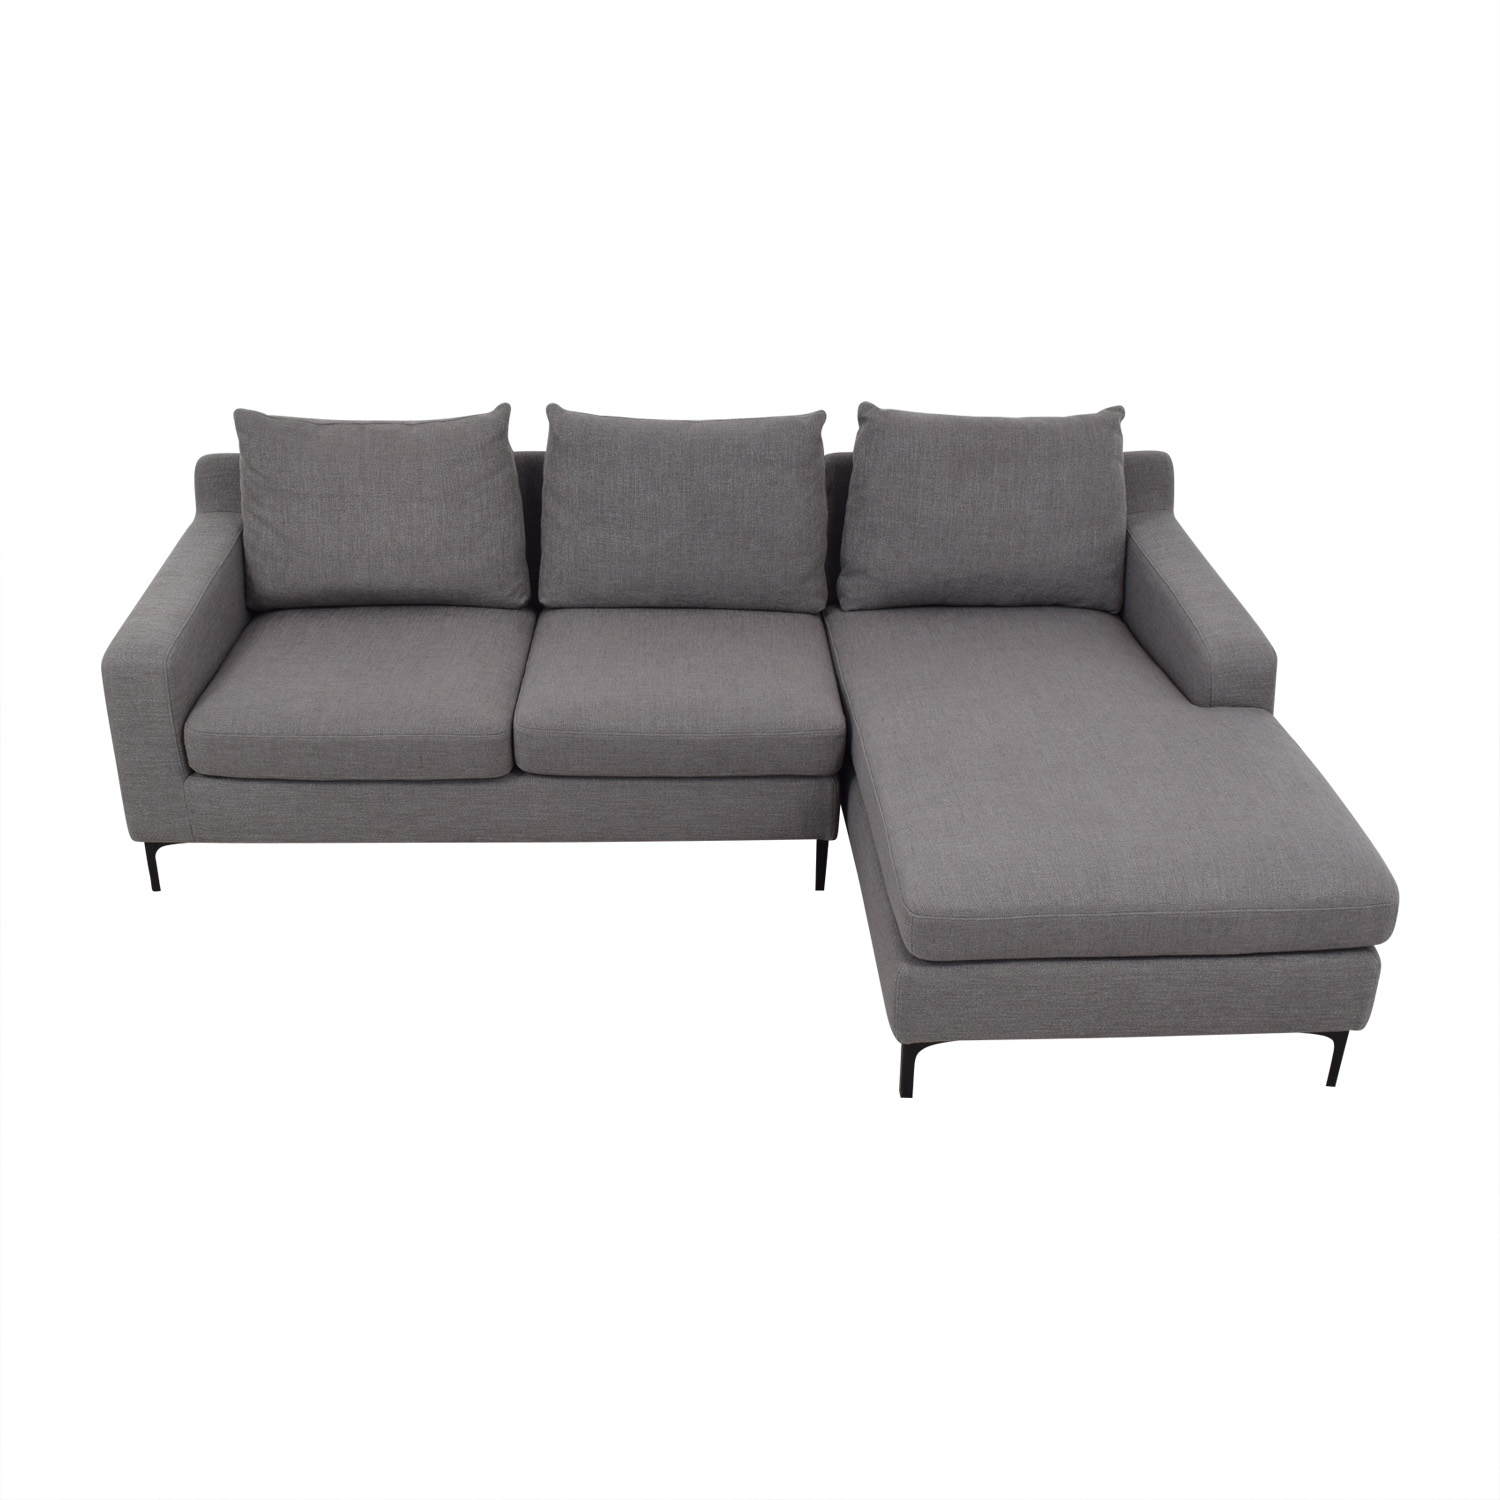 Sloan Sectional Sofa Left Chaise / Sofas